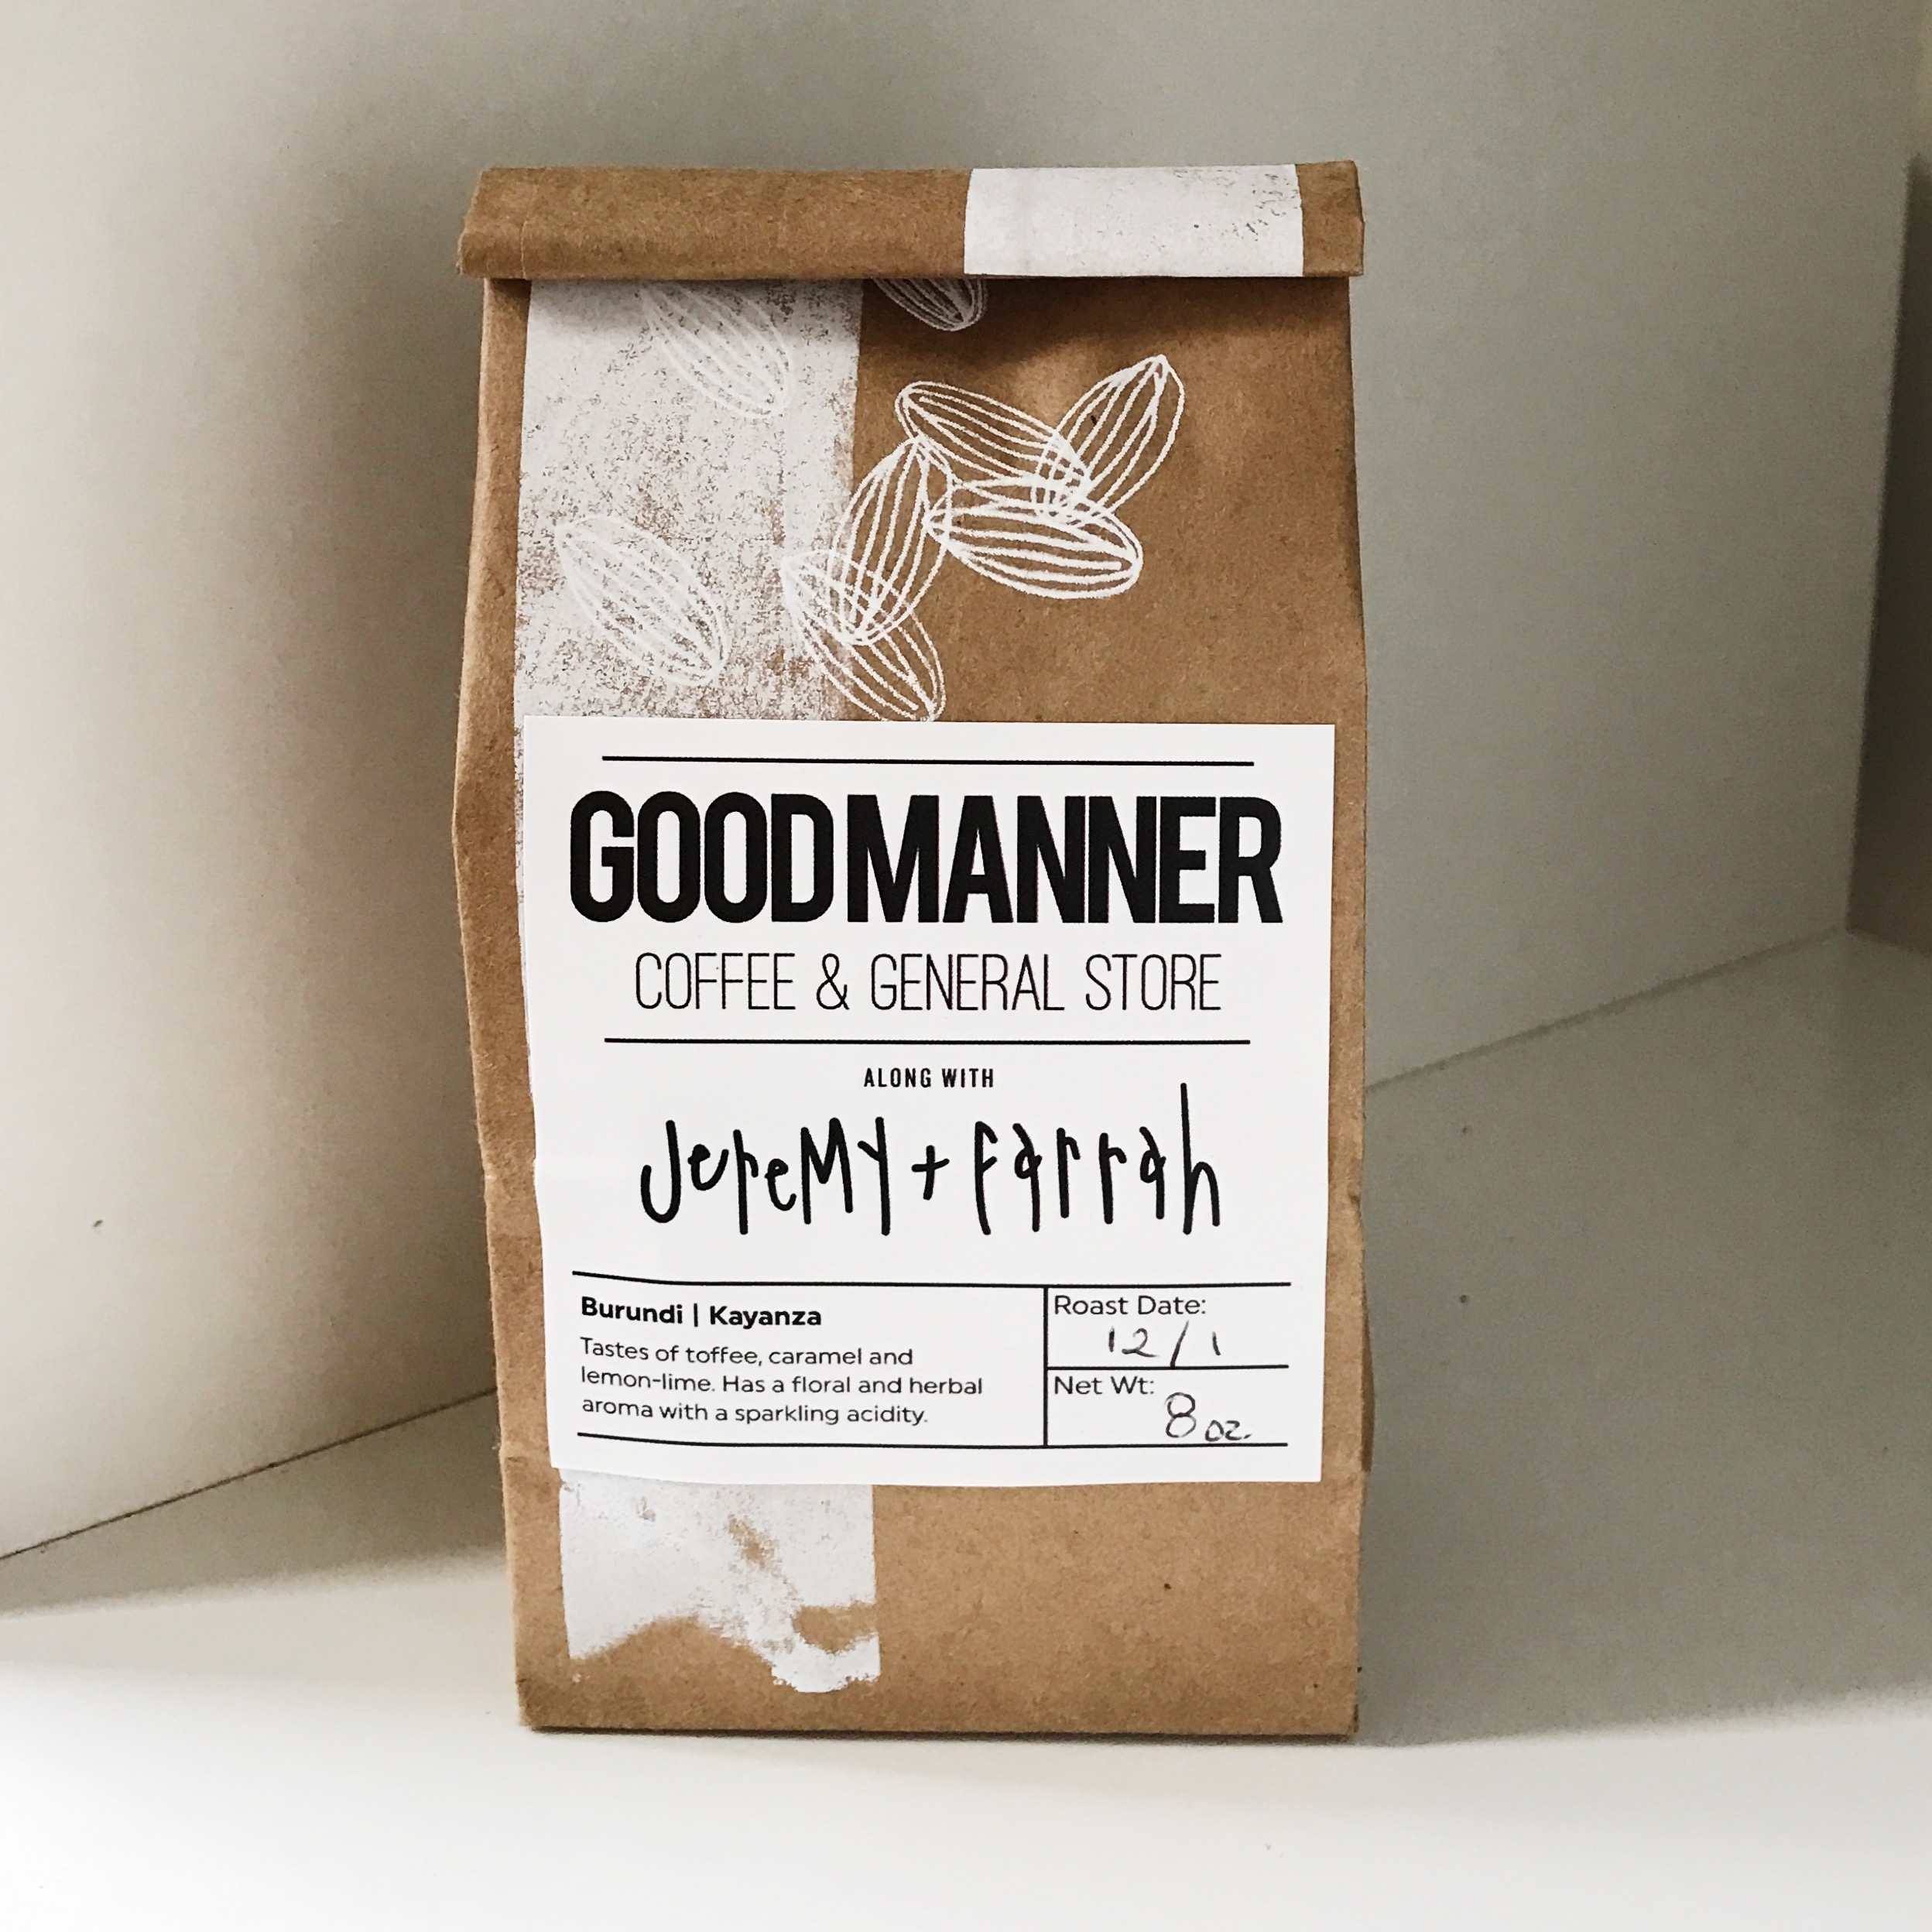 FIRST EDITION, SCREEN PRINTED FOR GOODMANNER COFFEE